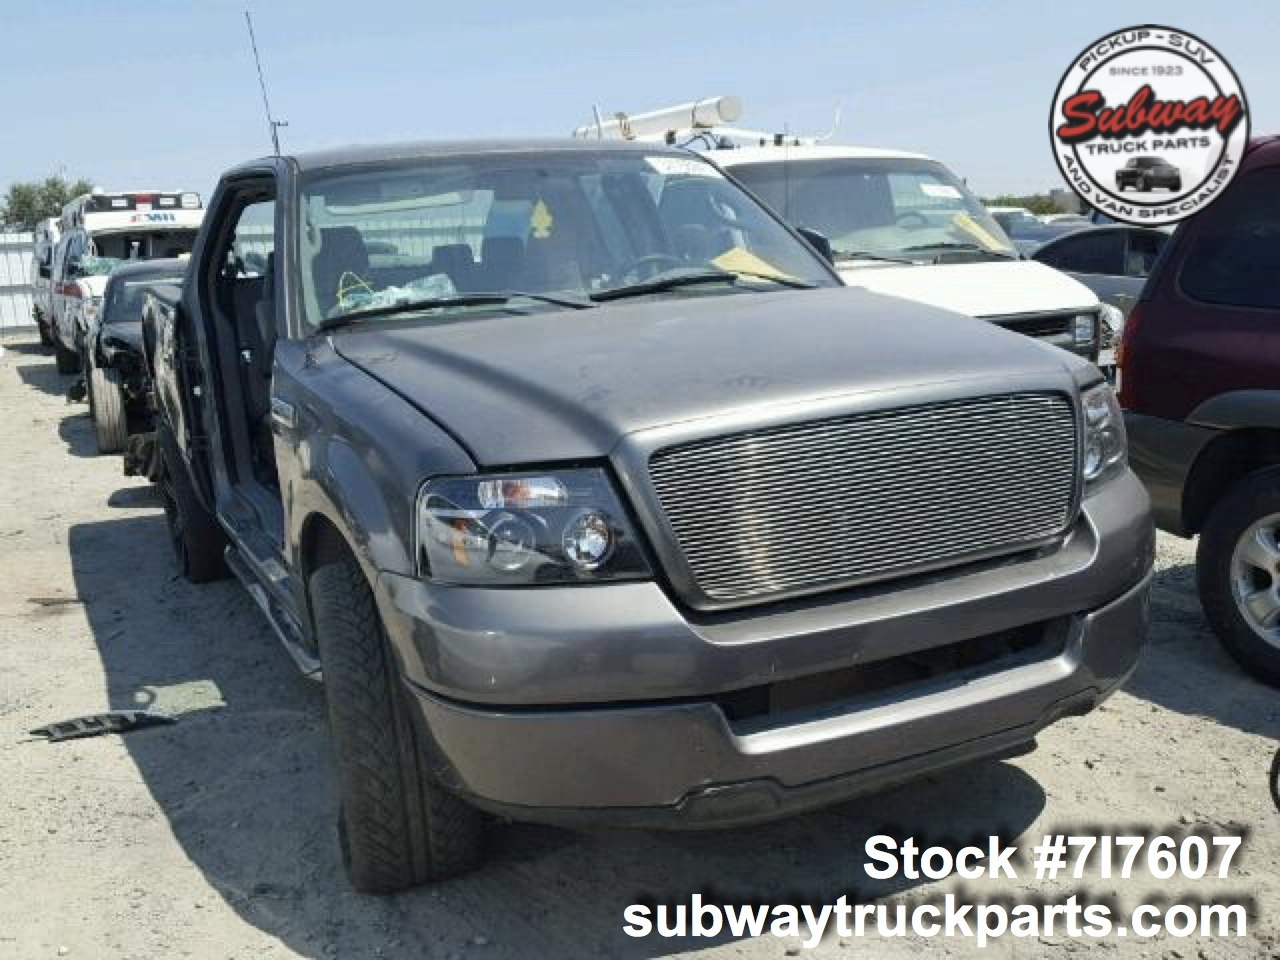 used parts 2005 ford f150 stx 4 6l 4x2 subway truck. Black Bedroom Furniture Sets. Home Design Ideas